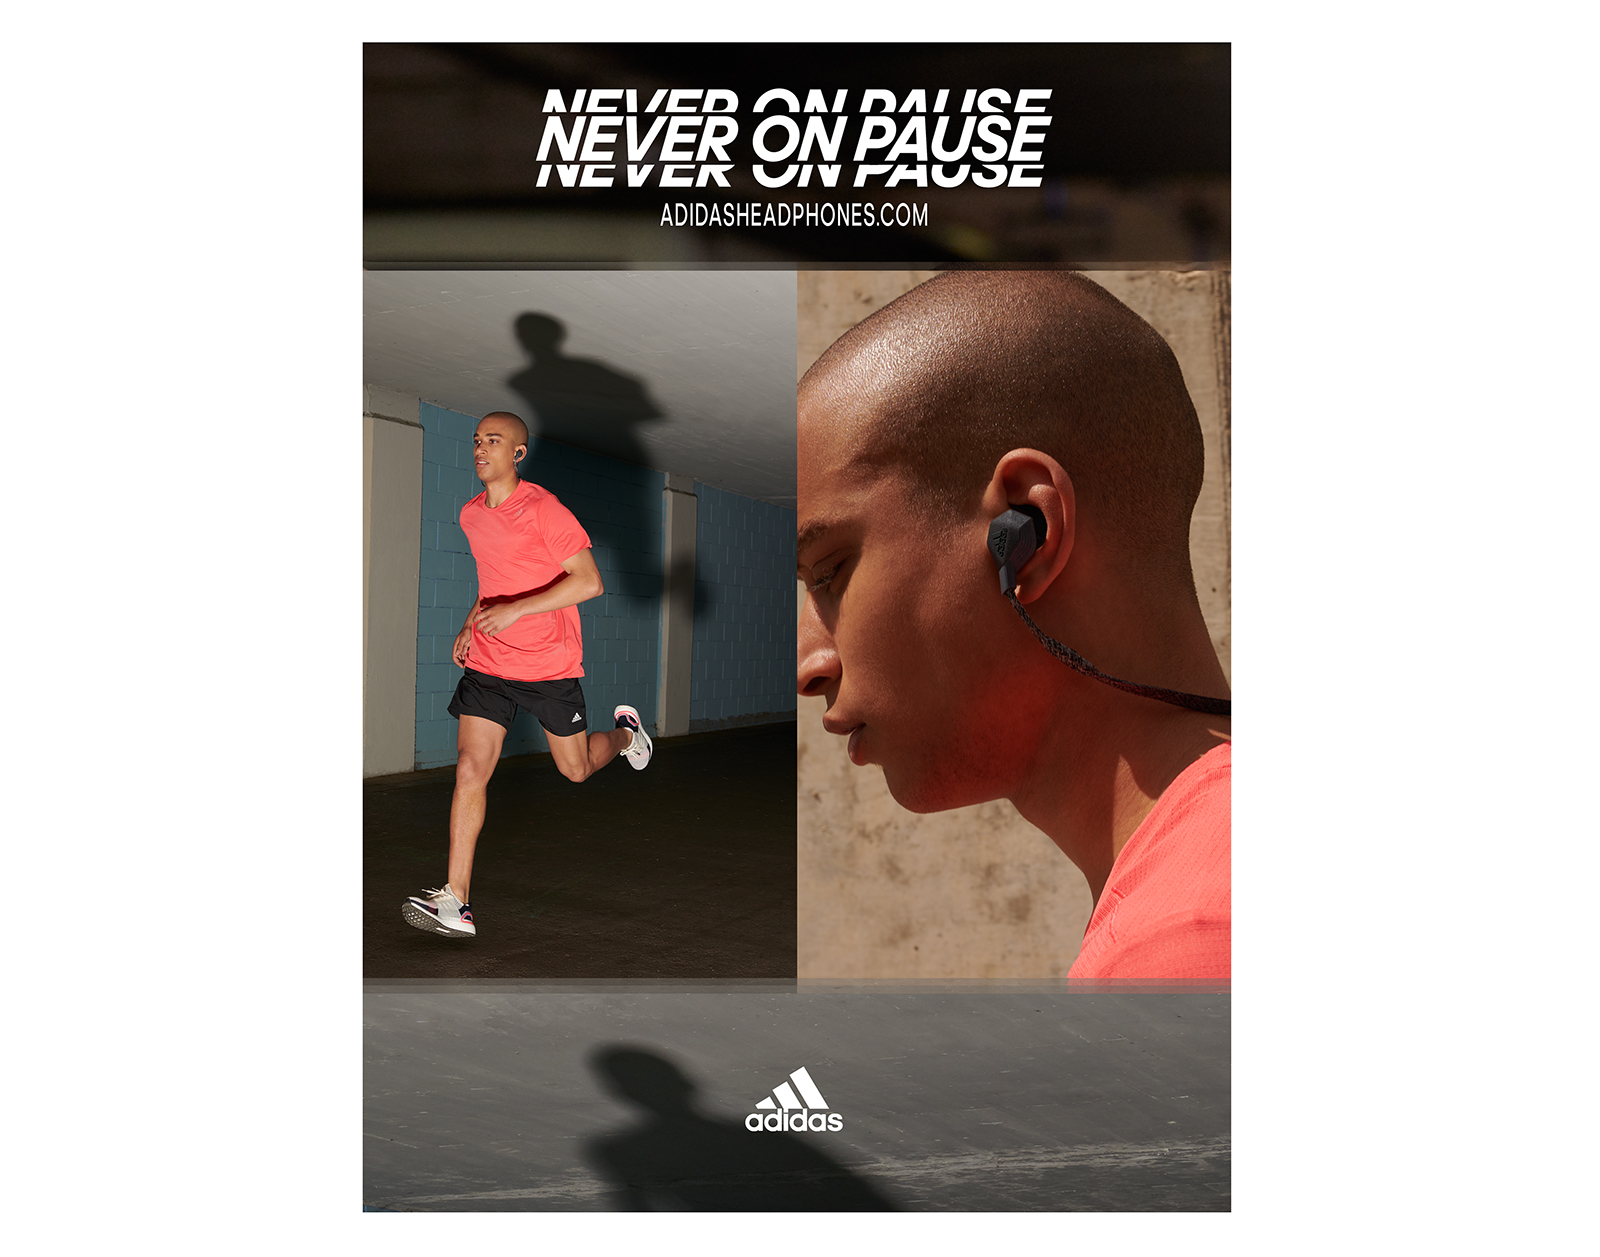 ASS_adidas_never on pause 04.jpg